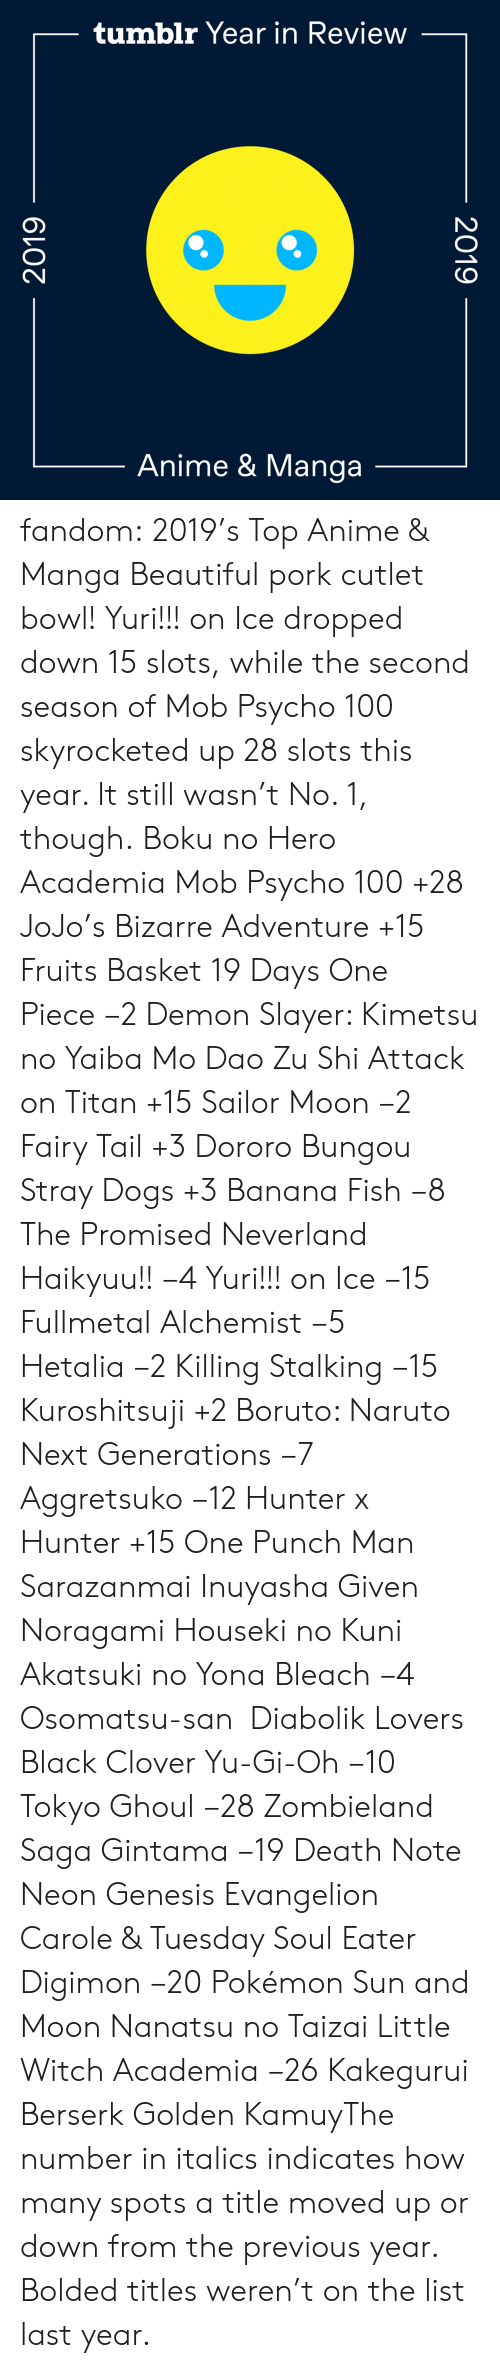 Banana: tumblr Year in Review  Anime & Manga  2019  2019 fandom:  2019's Top Anime & Manga  Beautiful pork cutlet bowl! Yuri!!! on Ice dropped down 15 slots, while the second season of Mob Psycho 100 skyrocketed up 28 slots this year. It still wasn't No. 1, though.  Boku no Hero Academia  Mob Psycho 100 +28  JoJo's Bizarre Adventure +15  Fruits Basket  19 Days  One Piece −2  Demon Slayer: Kimetsu no Yaiba  Mo Dao Zu Shi  Attack on Titan +15  Sailor Moon −2  Fairy Tail +3  Dororo  Bungou Stray Dogs +3  Banana Fish −8  The Promised Neverland  Haikyuu!! −4  Yuri!!! on Ice −15  Fullmetal Alchemist −5  Hetalia −2  Killing Stalking −15  Kuroshitsuji +2  Boruto: Naruto Next Generations −7  Aggretsuko −12  Hunter x Hunter +15  One Punch Man  Sarazanmai  Inuyasha  Given  Noragami  Houseki no Kuni  Akatsuki no Yona  Bleach −4  Osomatsu-san   Diabolik Lovers  Black Clover  Yu-Gi-Oh −10  Tokyo Ghoul −28  Zombieland Saga  Gintama −19  Death Note  Neon Genesis Evangelion  Carole & Tuesday  Soul Eater  Digimon −20  Pokémon Sun and Moon  Nanatsu no Taizai  Little Witch Academia −26  Kakegurui  Berserk Golden KamuyThe number in italics indicates how many spots a title moved up or down from the previous year. Bolded titles weren't on the list last year.